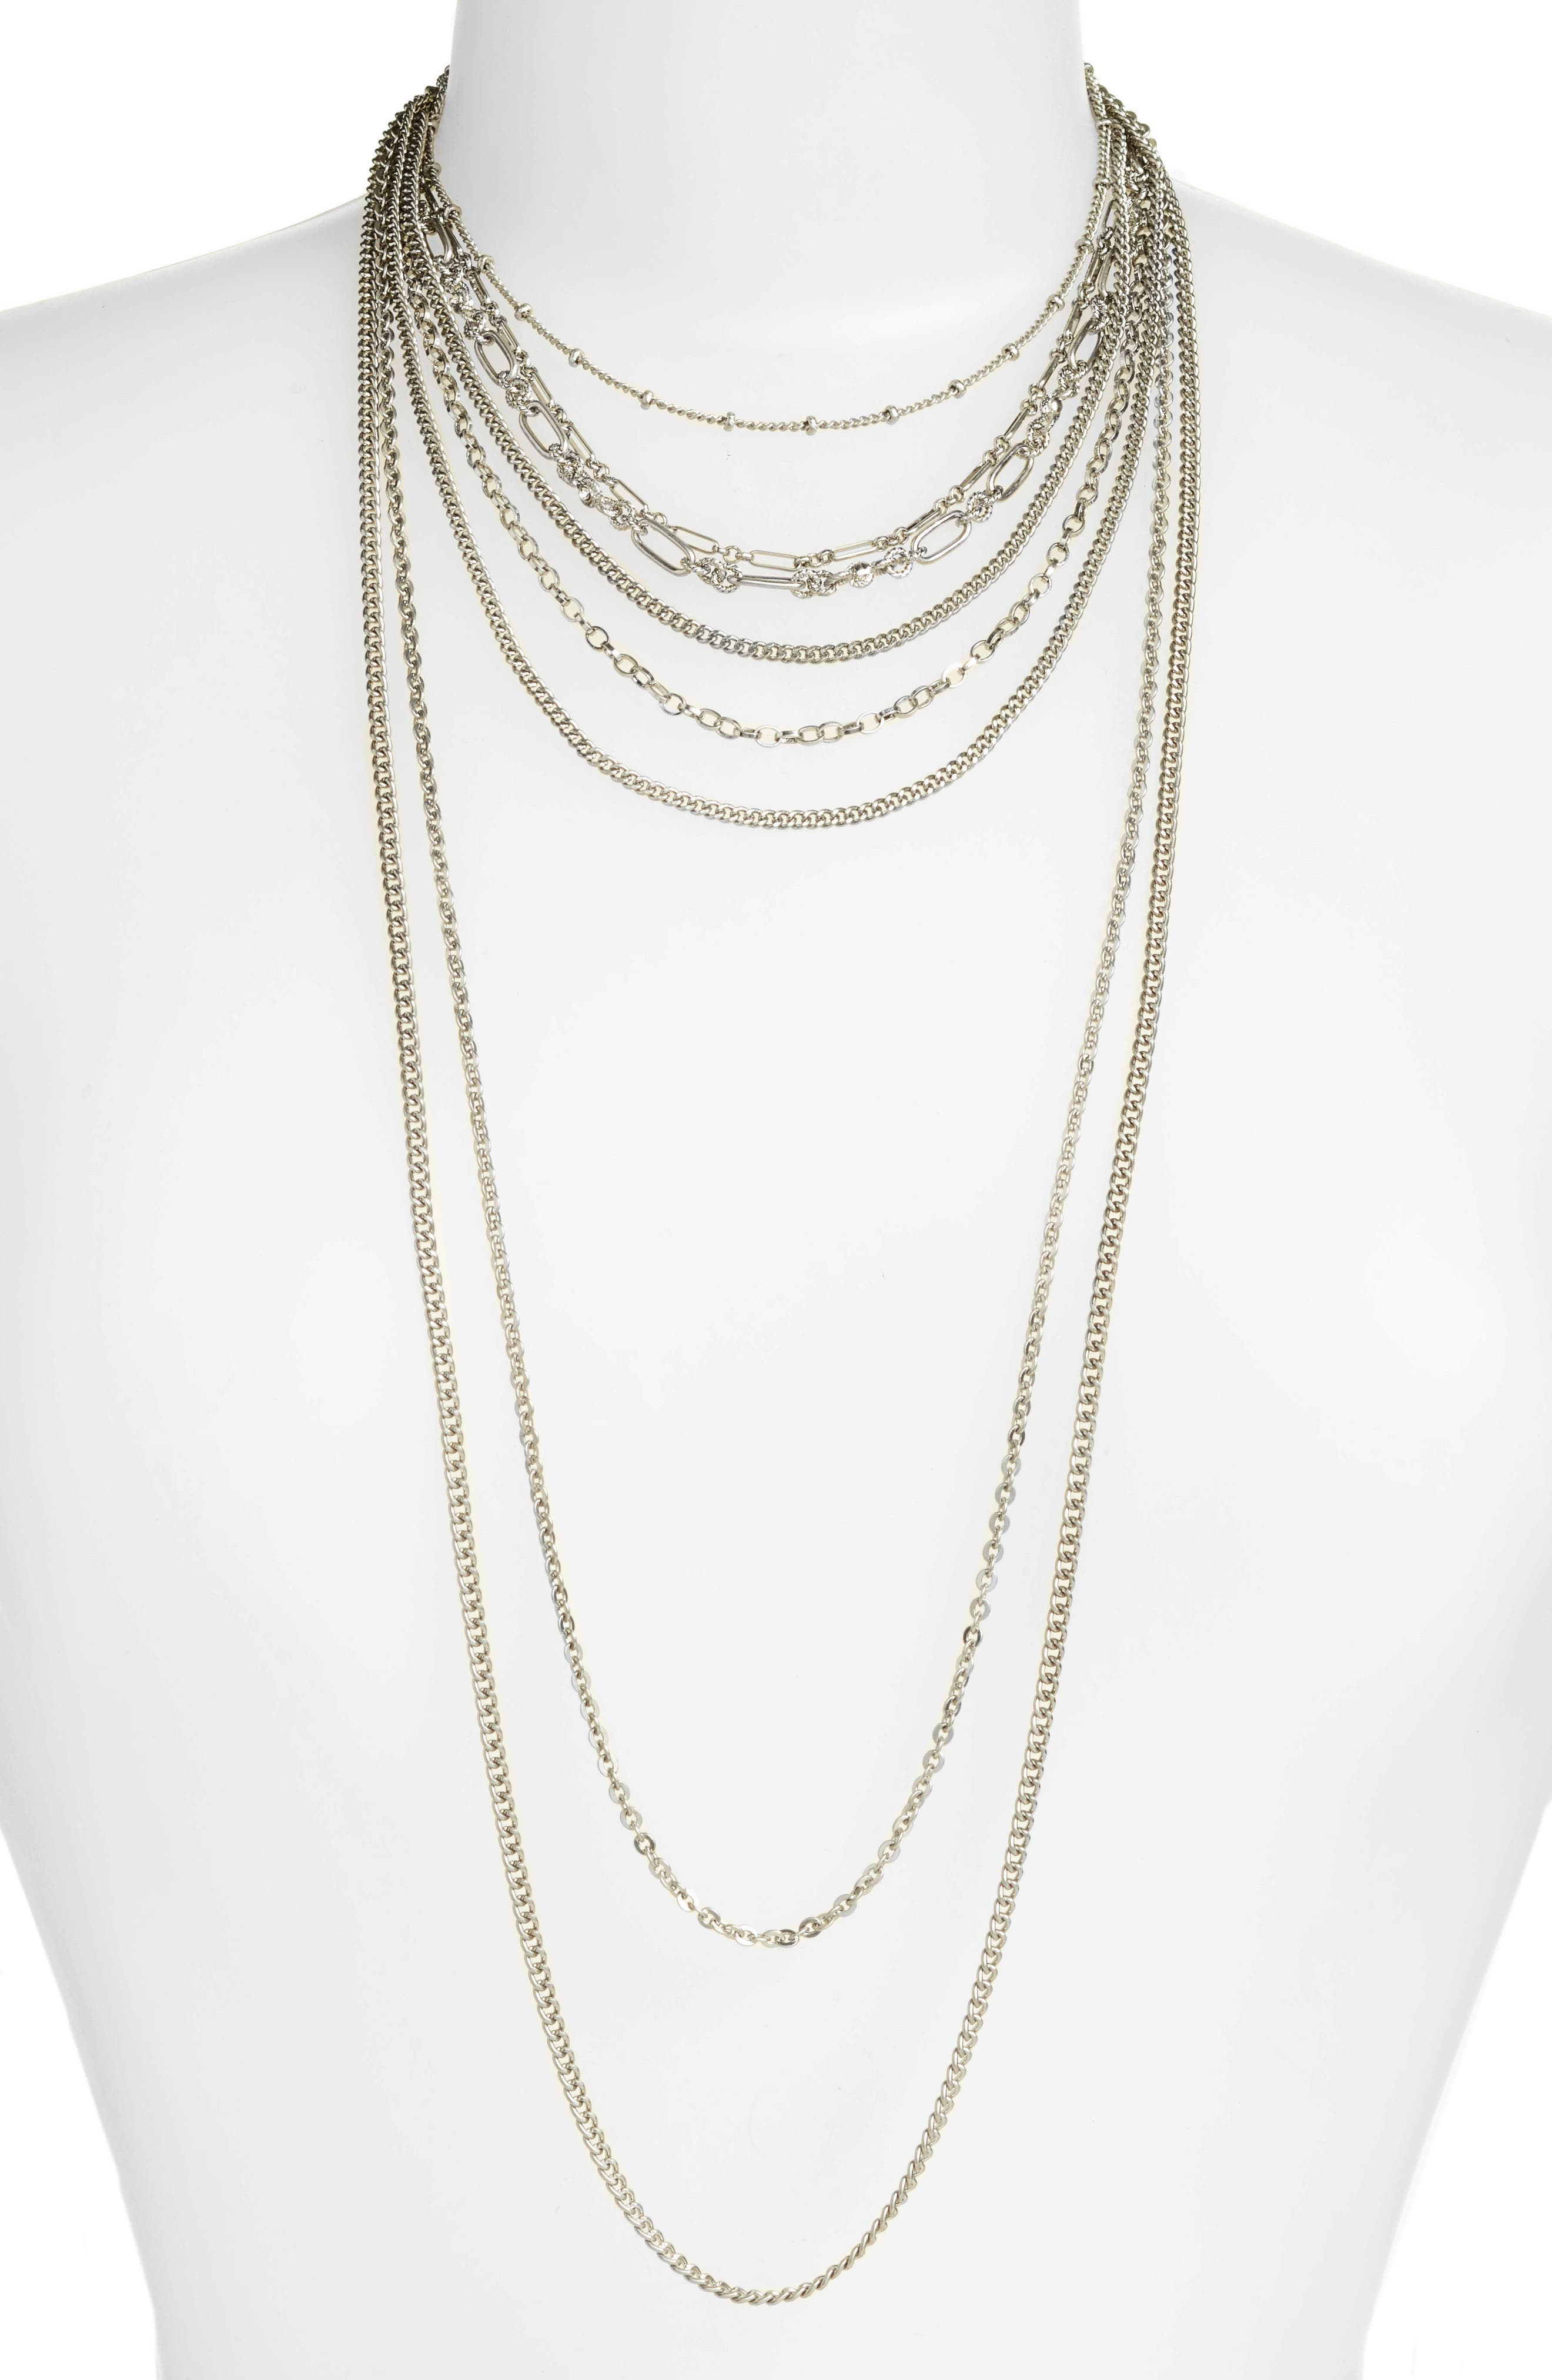 Multistrand Textured Chain Necklace,                         Main,                         color, Clear- Rhodium